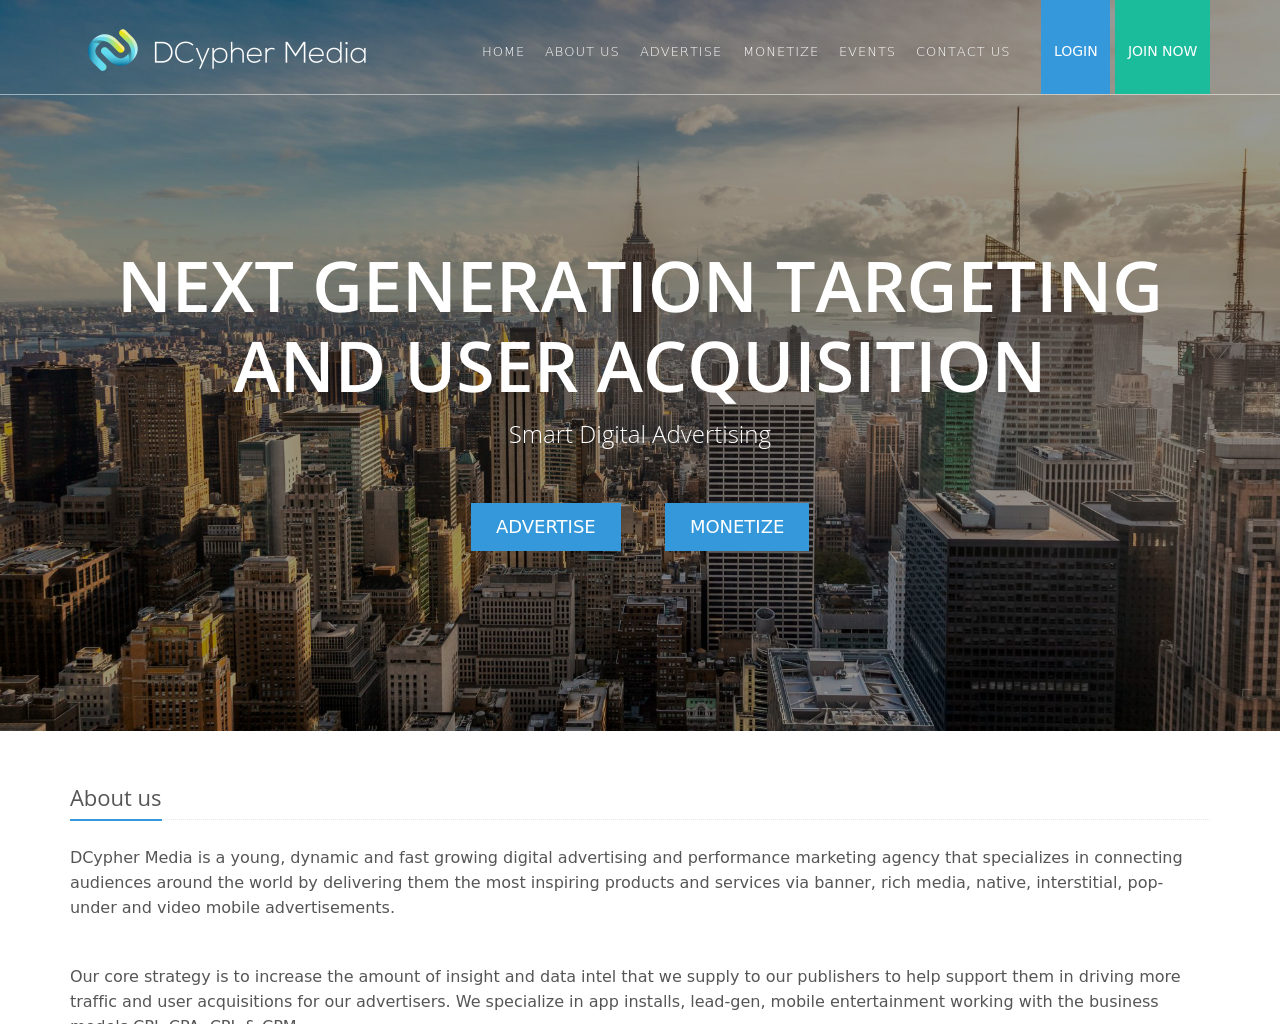 DCypher-Media-Advertising-Reviews-Pricing